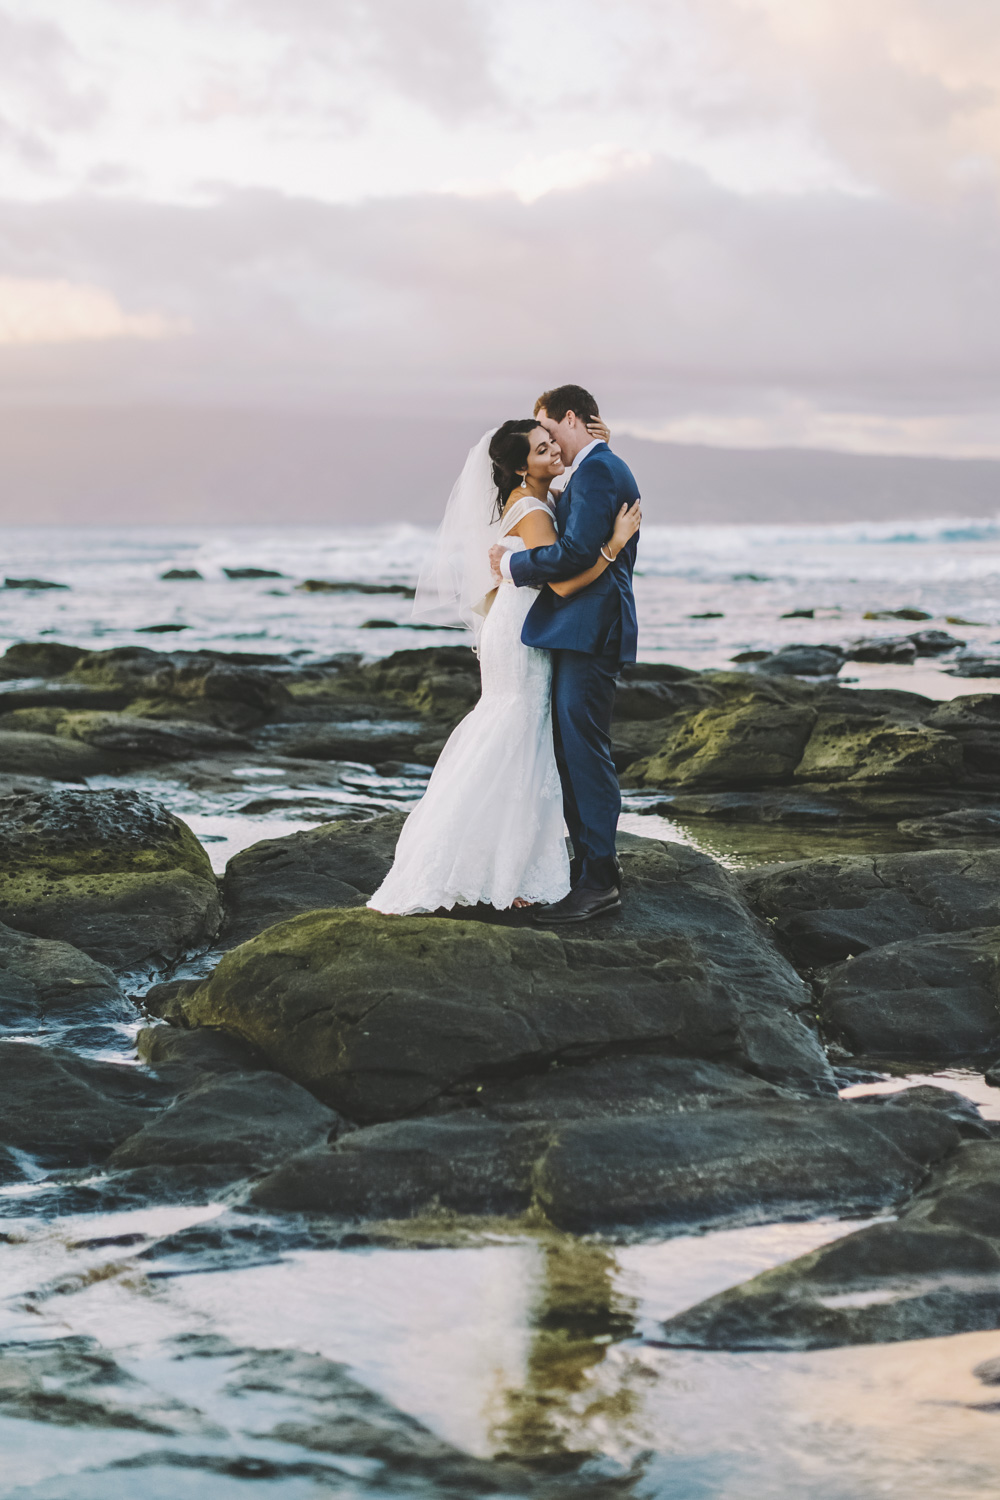 Maui hawaii photographer wedding inspiration_25.jpg